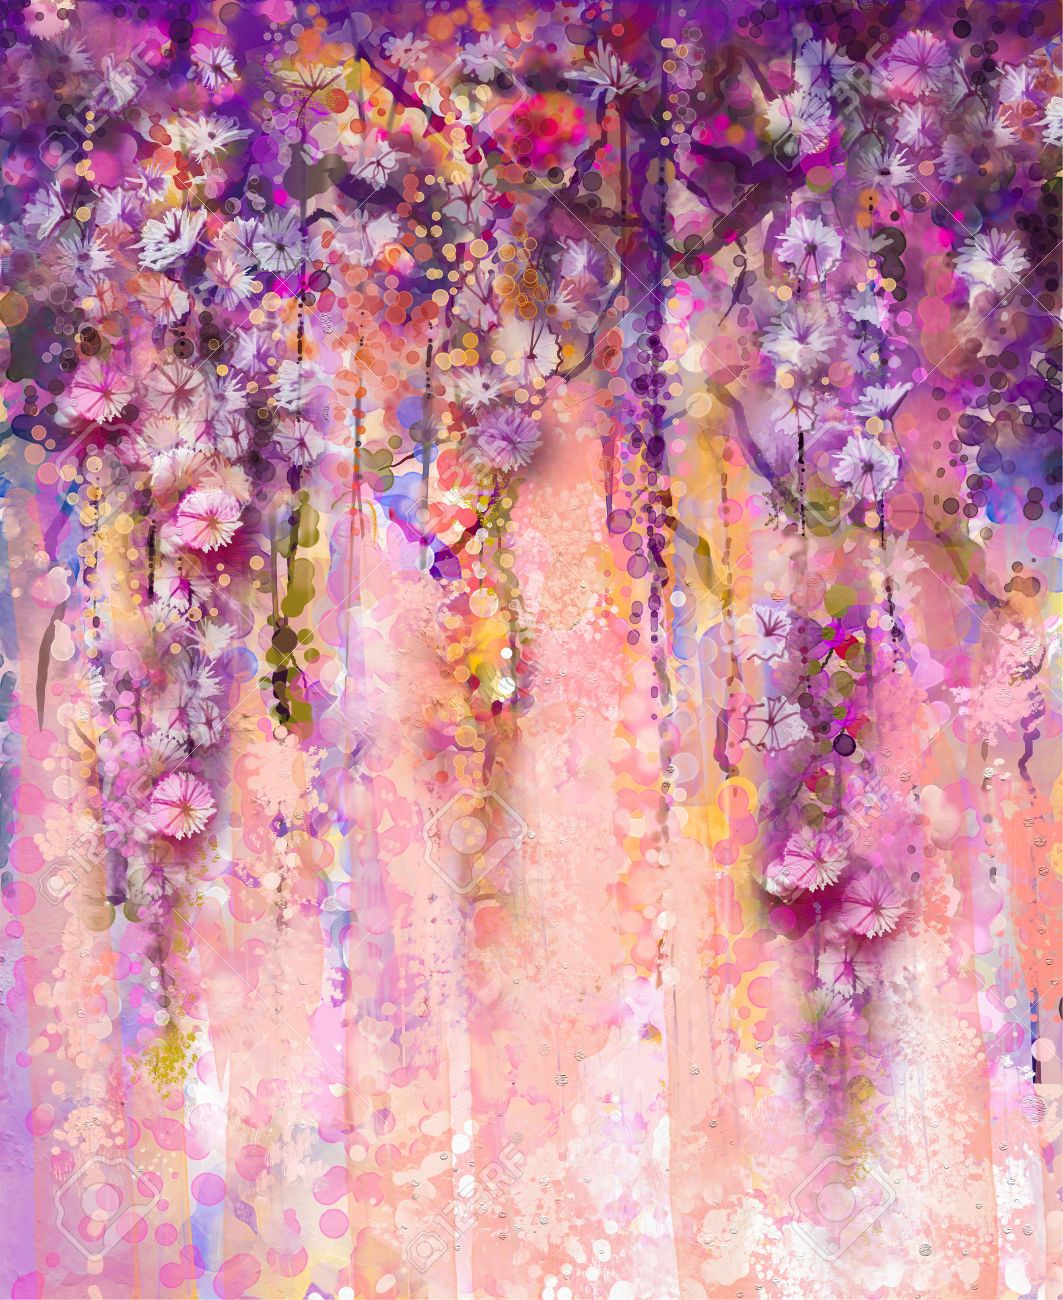 Abstract Pink And Violet Color Flowers Watercolor Painting Flower Background Wallpaper Flower Painting Purple Flowers Wallpaper